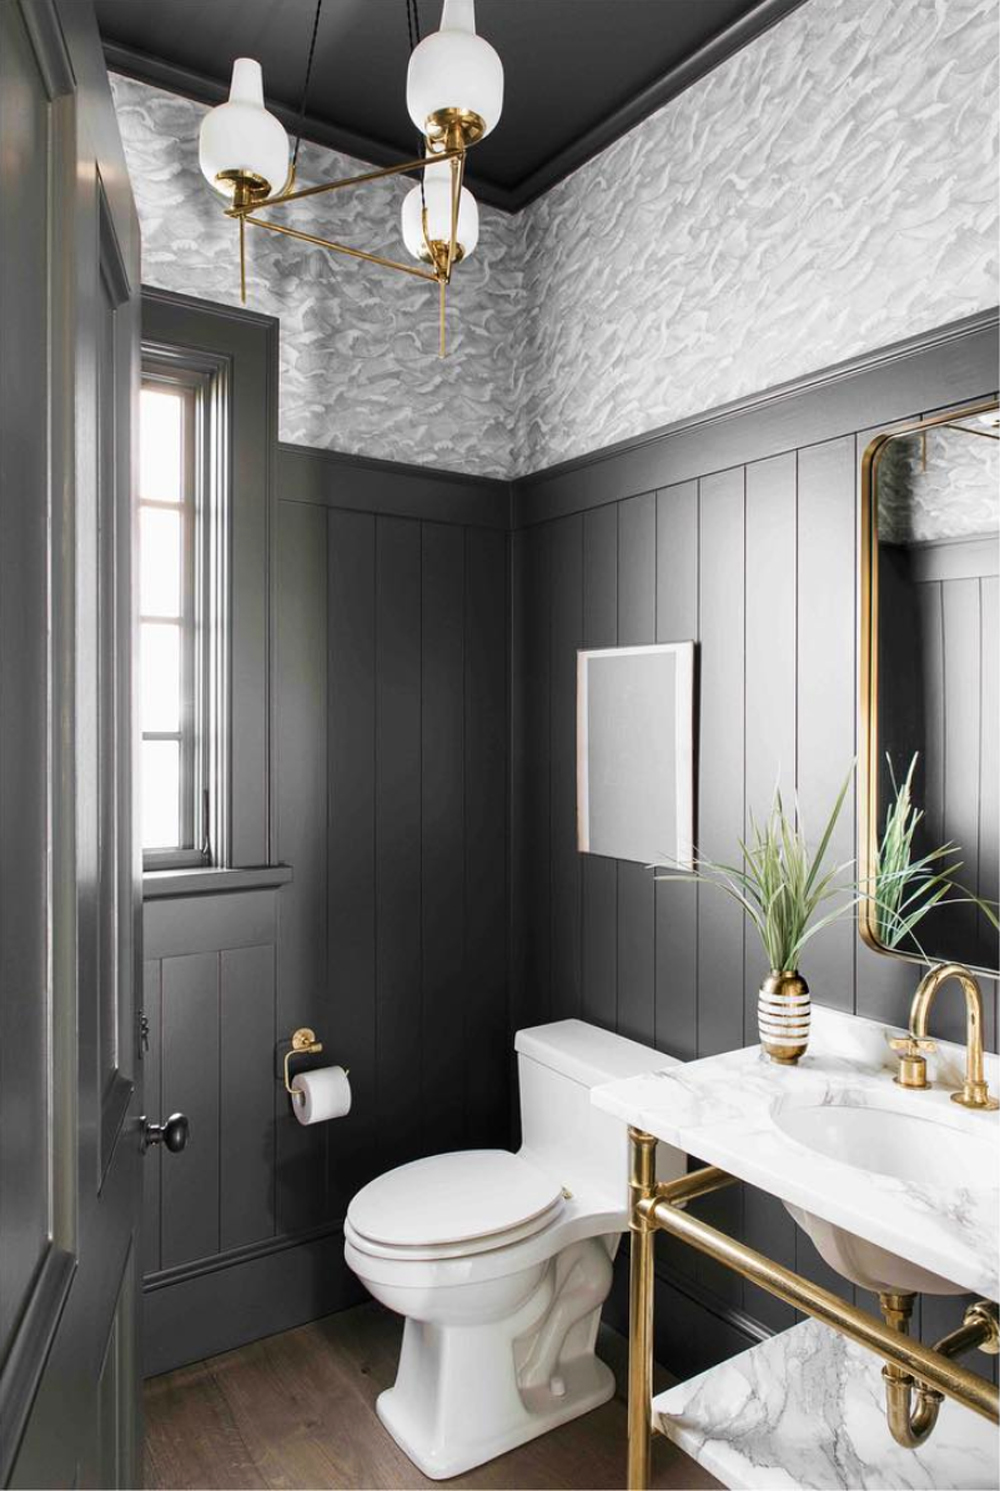 Dark powder room with shiplap and wallpaper - Cortney Bishop Design || 15 small cloakrooms / powder rooms that are big on style - FIRST SENSE